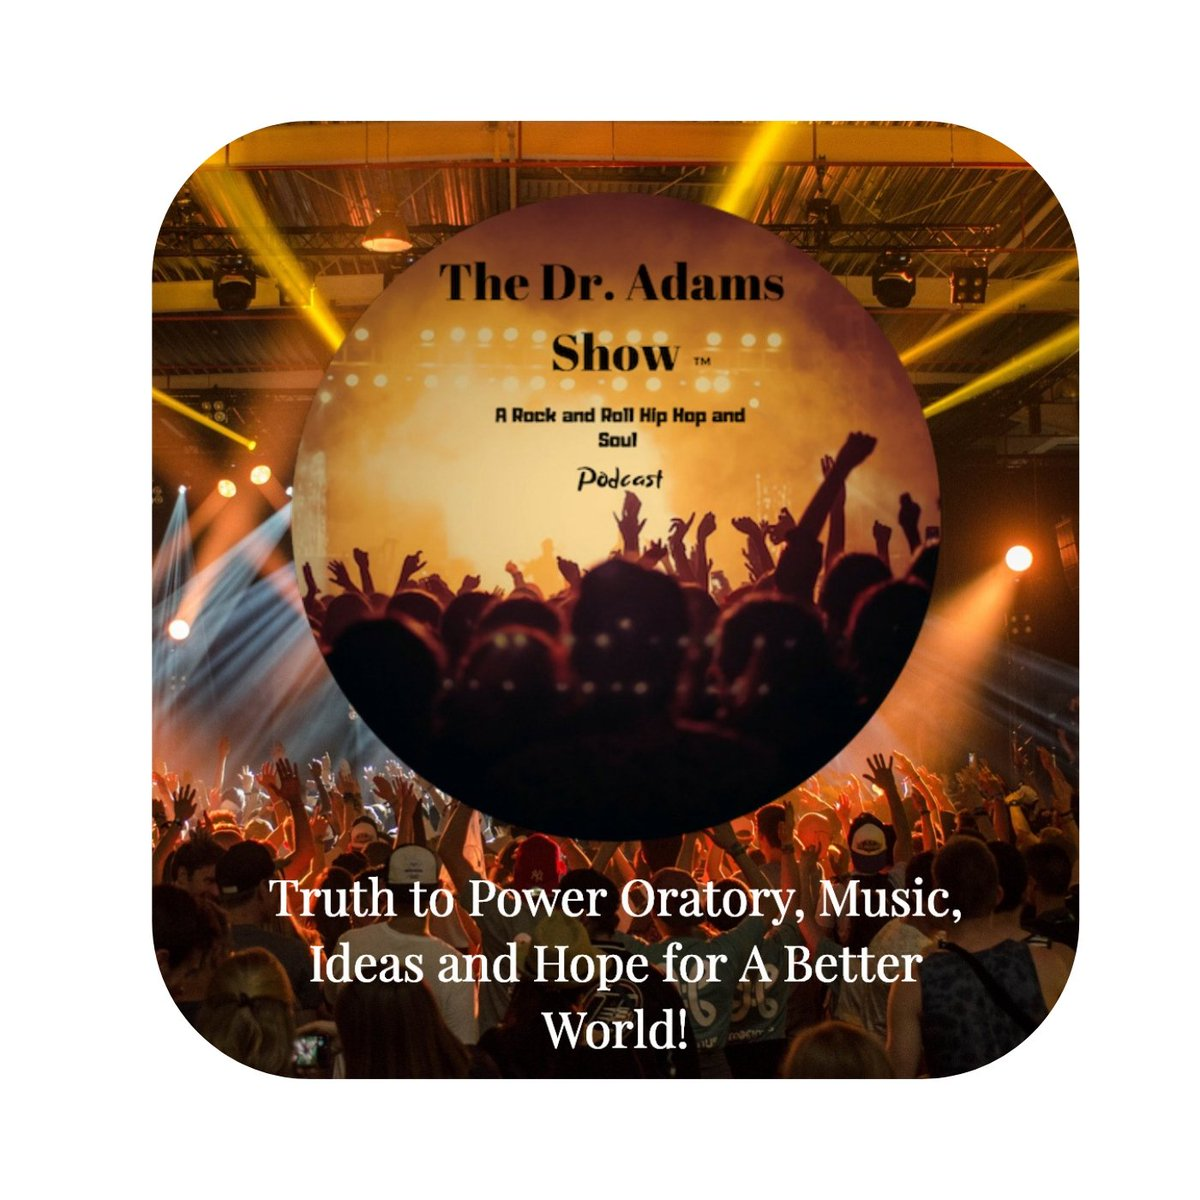 "The 1st Episode of ""The Dr. Adams Show"" formerly entitled The Rock and Roll Hip Hop and Soul Education Podcast goes live on iTunes at 8 am EST. #democracy #education #edchat # edtech #technology #music"